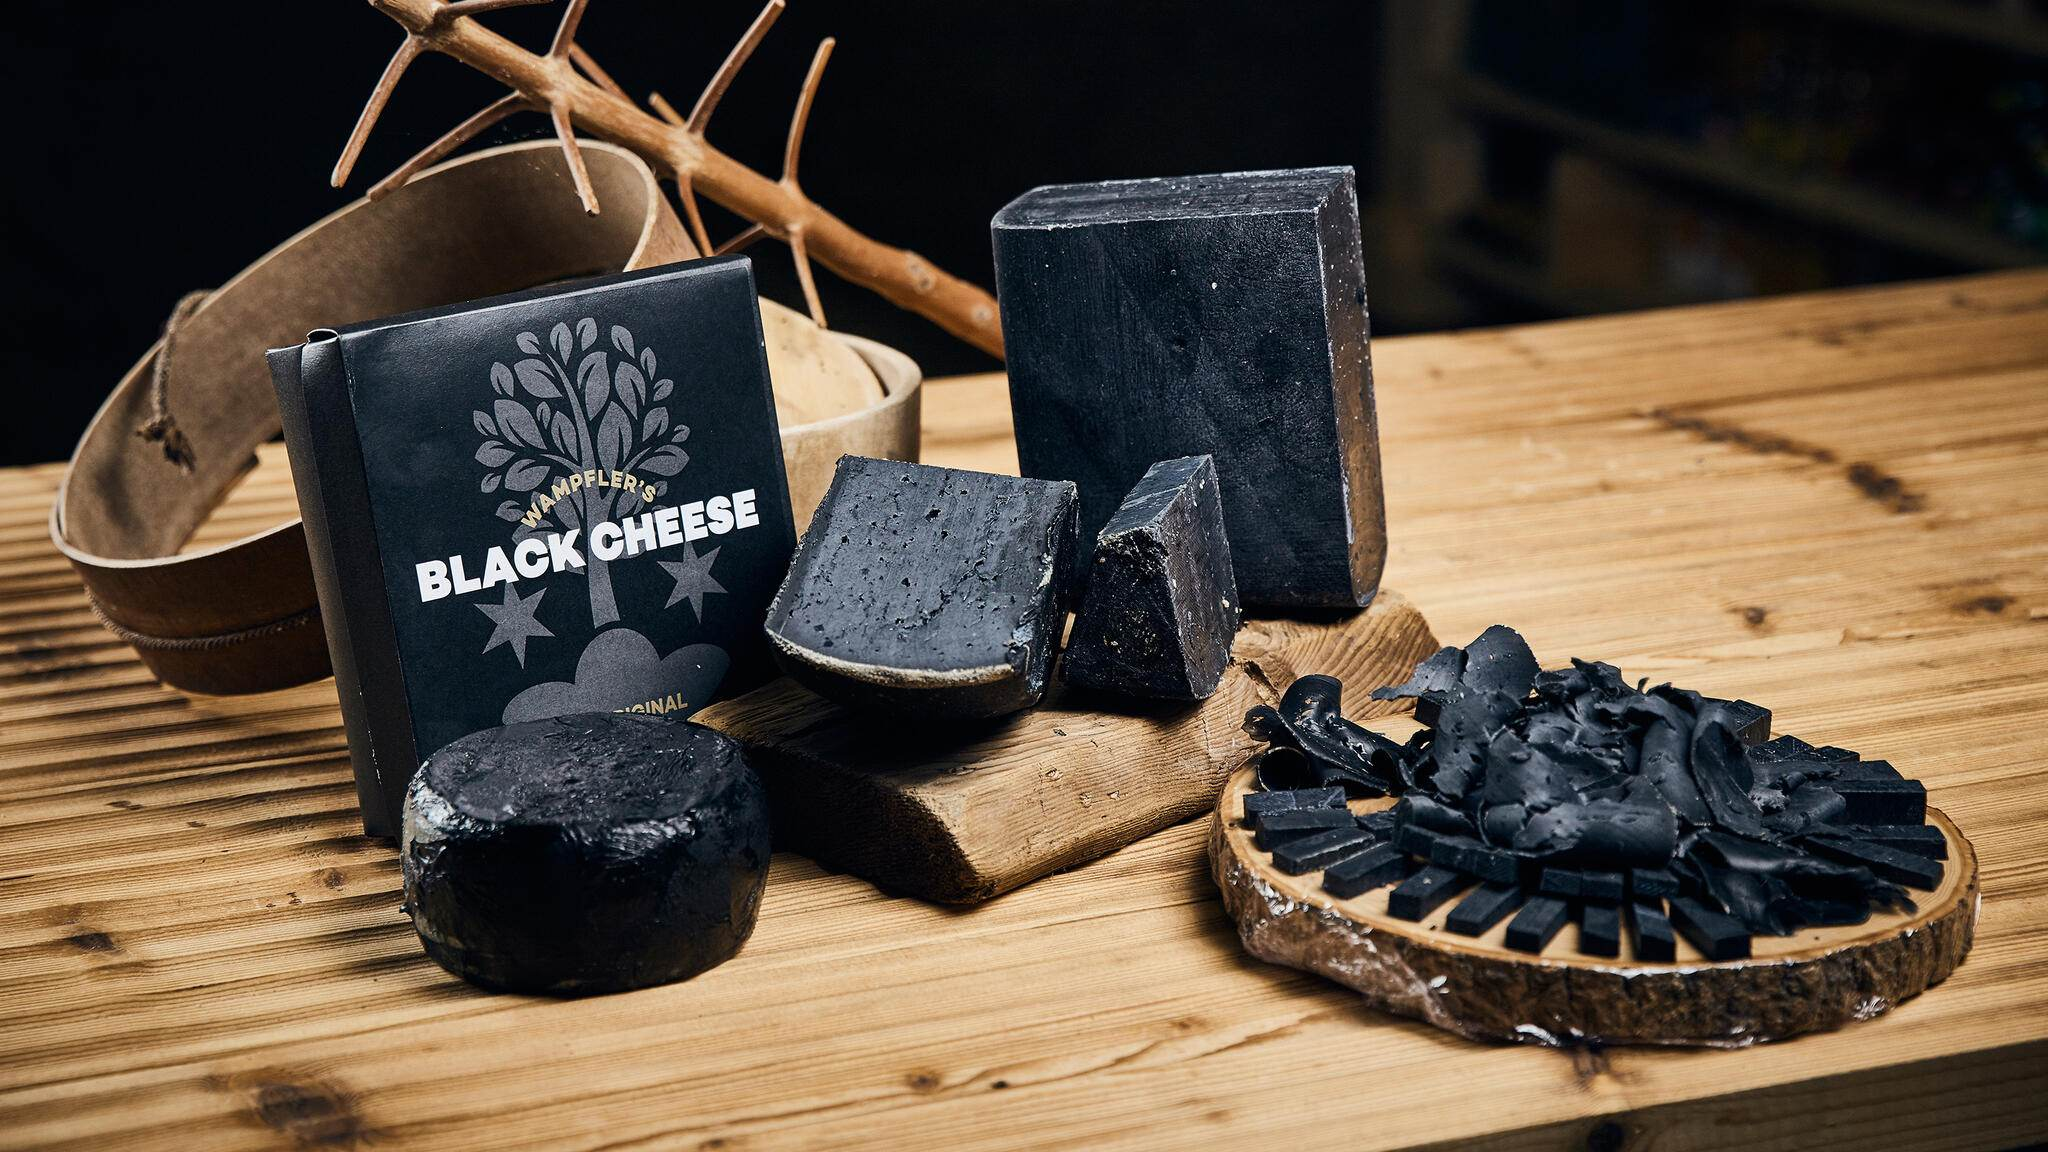 Black Cheese nicht in Japan auf GaultMillau